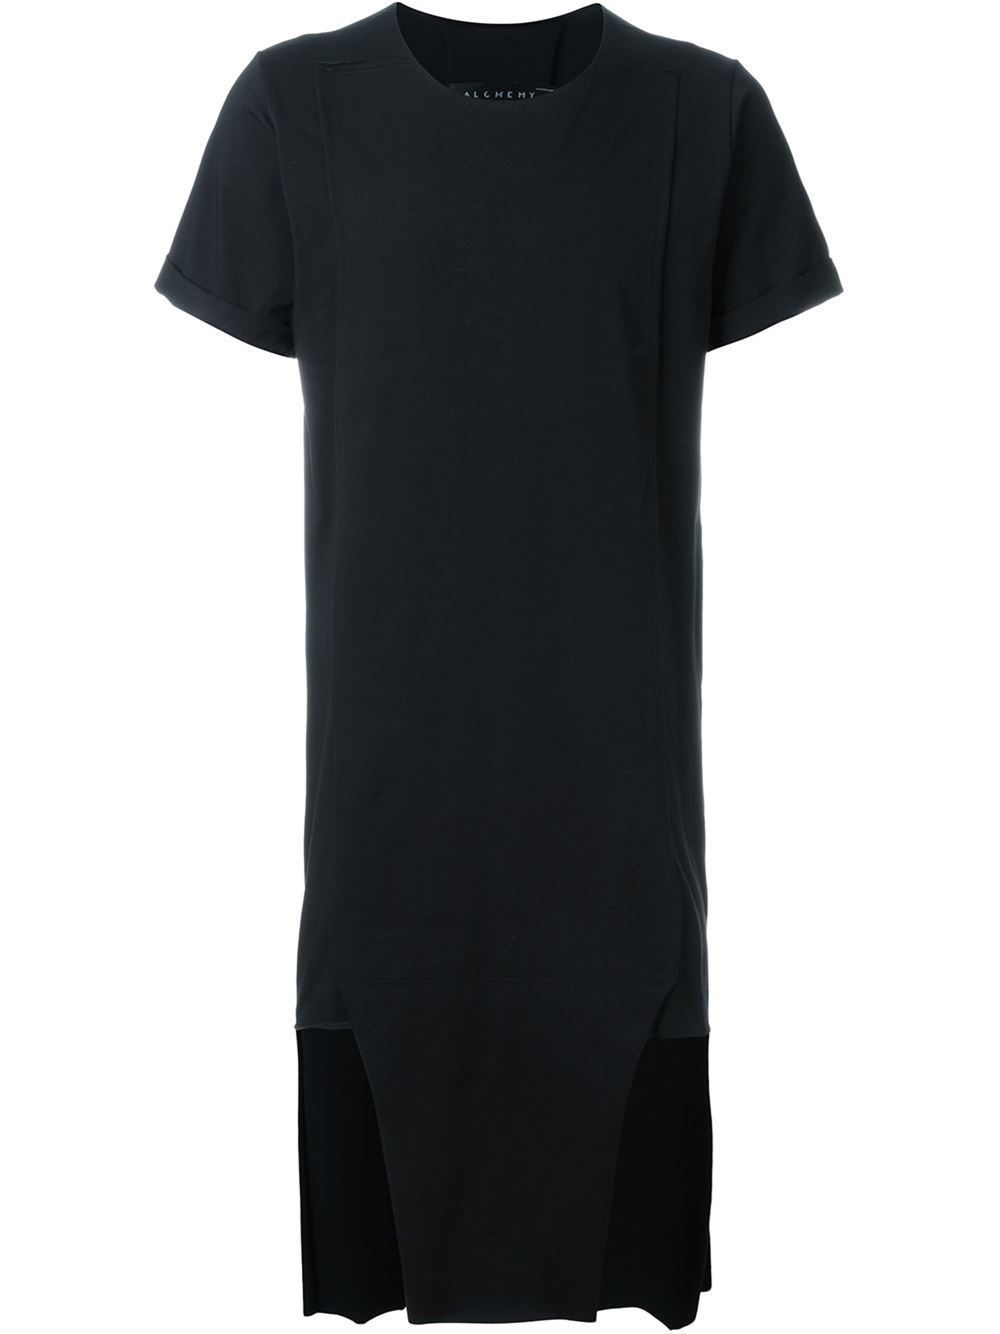 Alchemy asymmetric T-shirt dress Lowest Price Cheap Online Cheap Sale Free Shipping Discount Aaa r1KNL